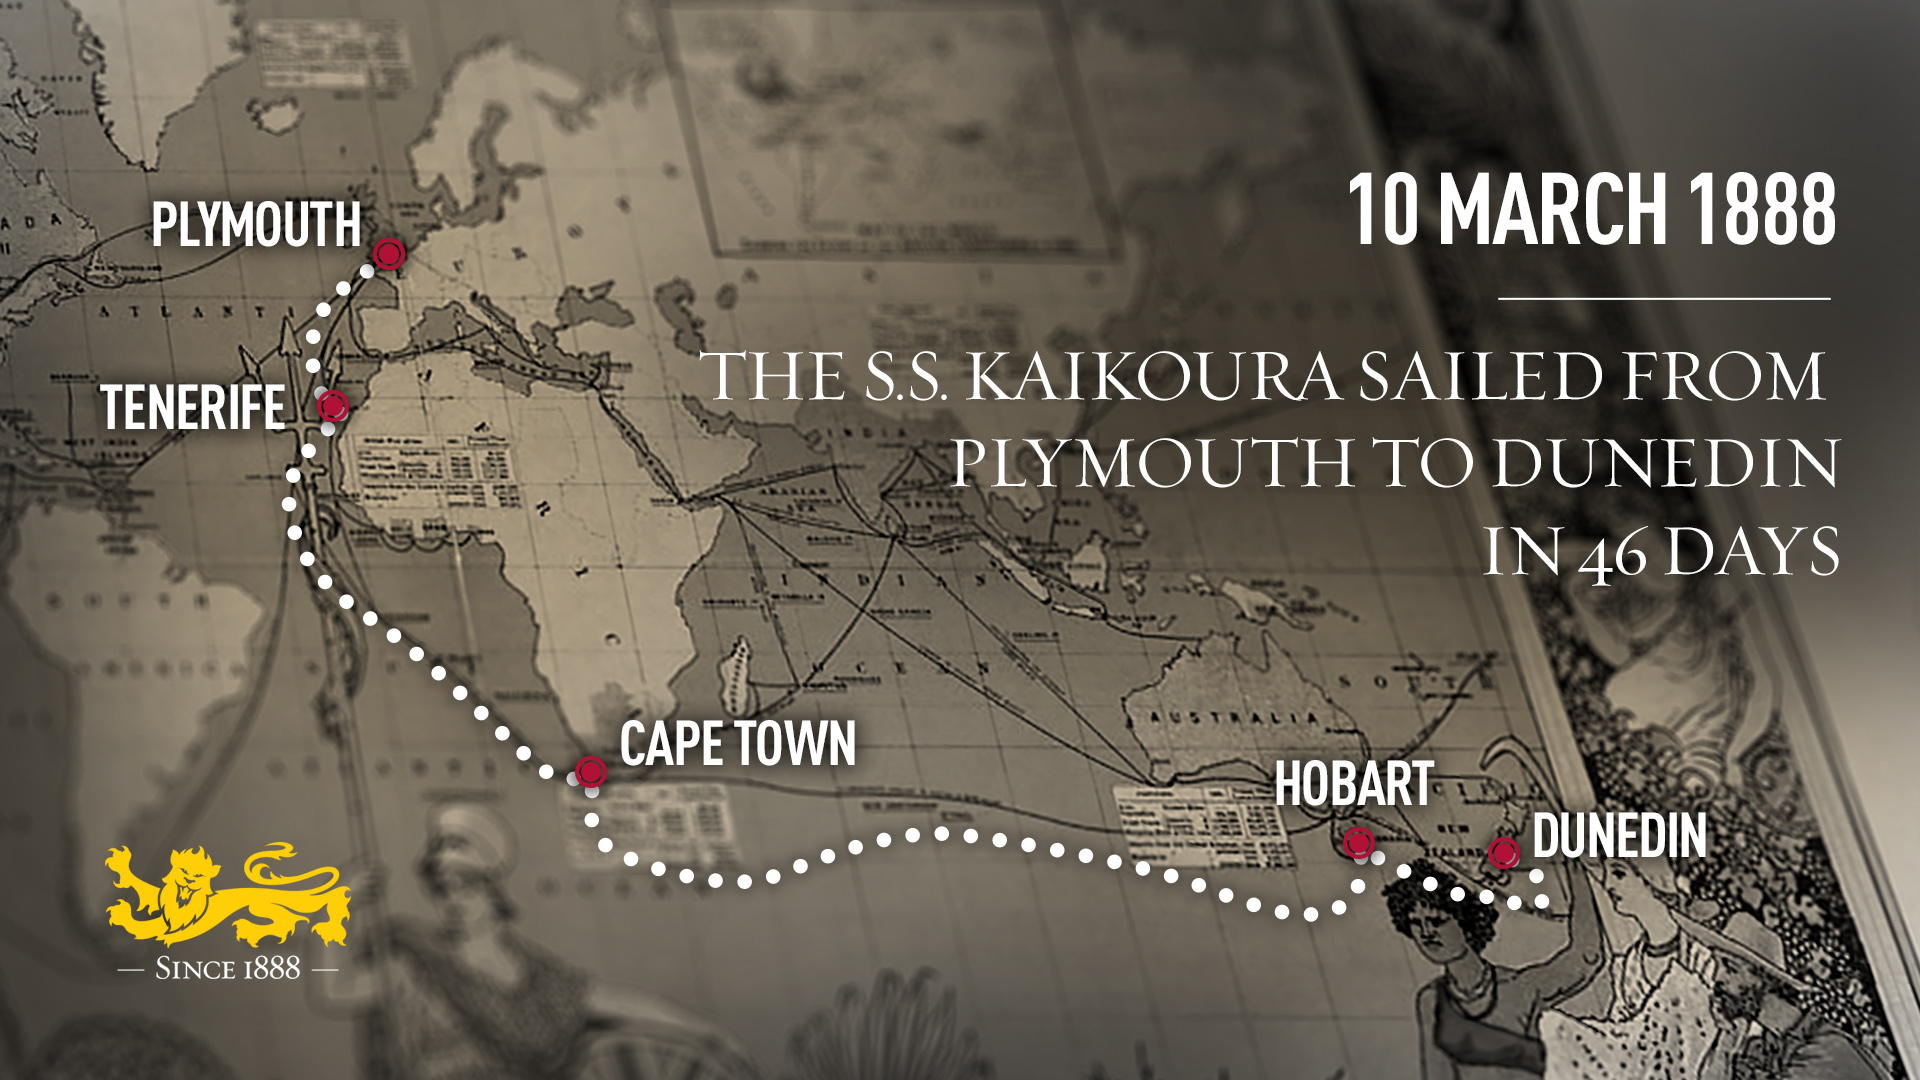 The 1888 Pioneers: The Journey to the Other side of the World – Part Two